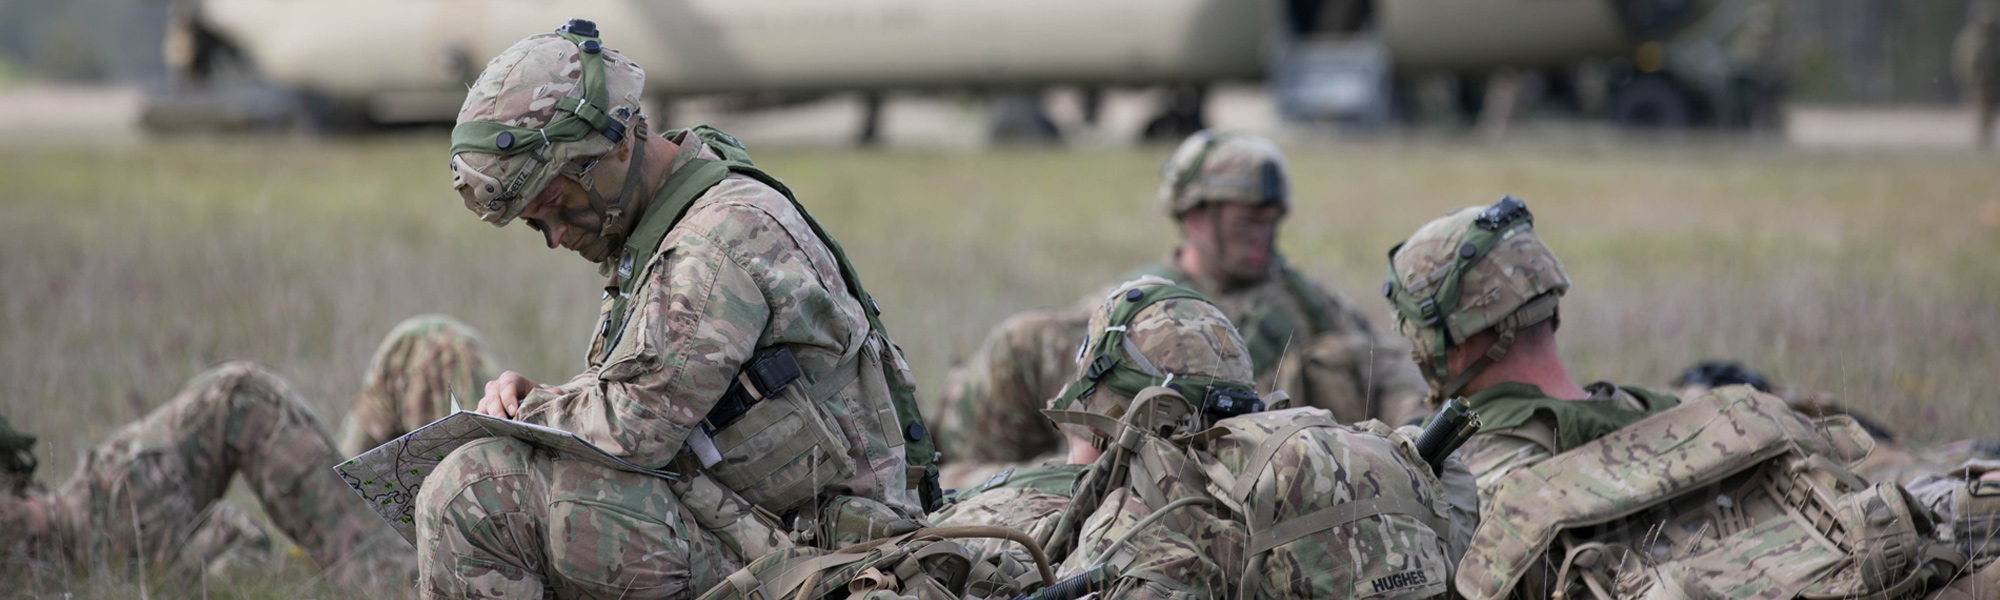 Ground Image - Soldiers sitting